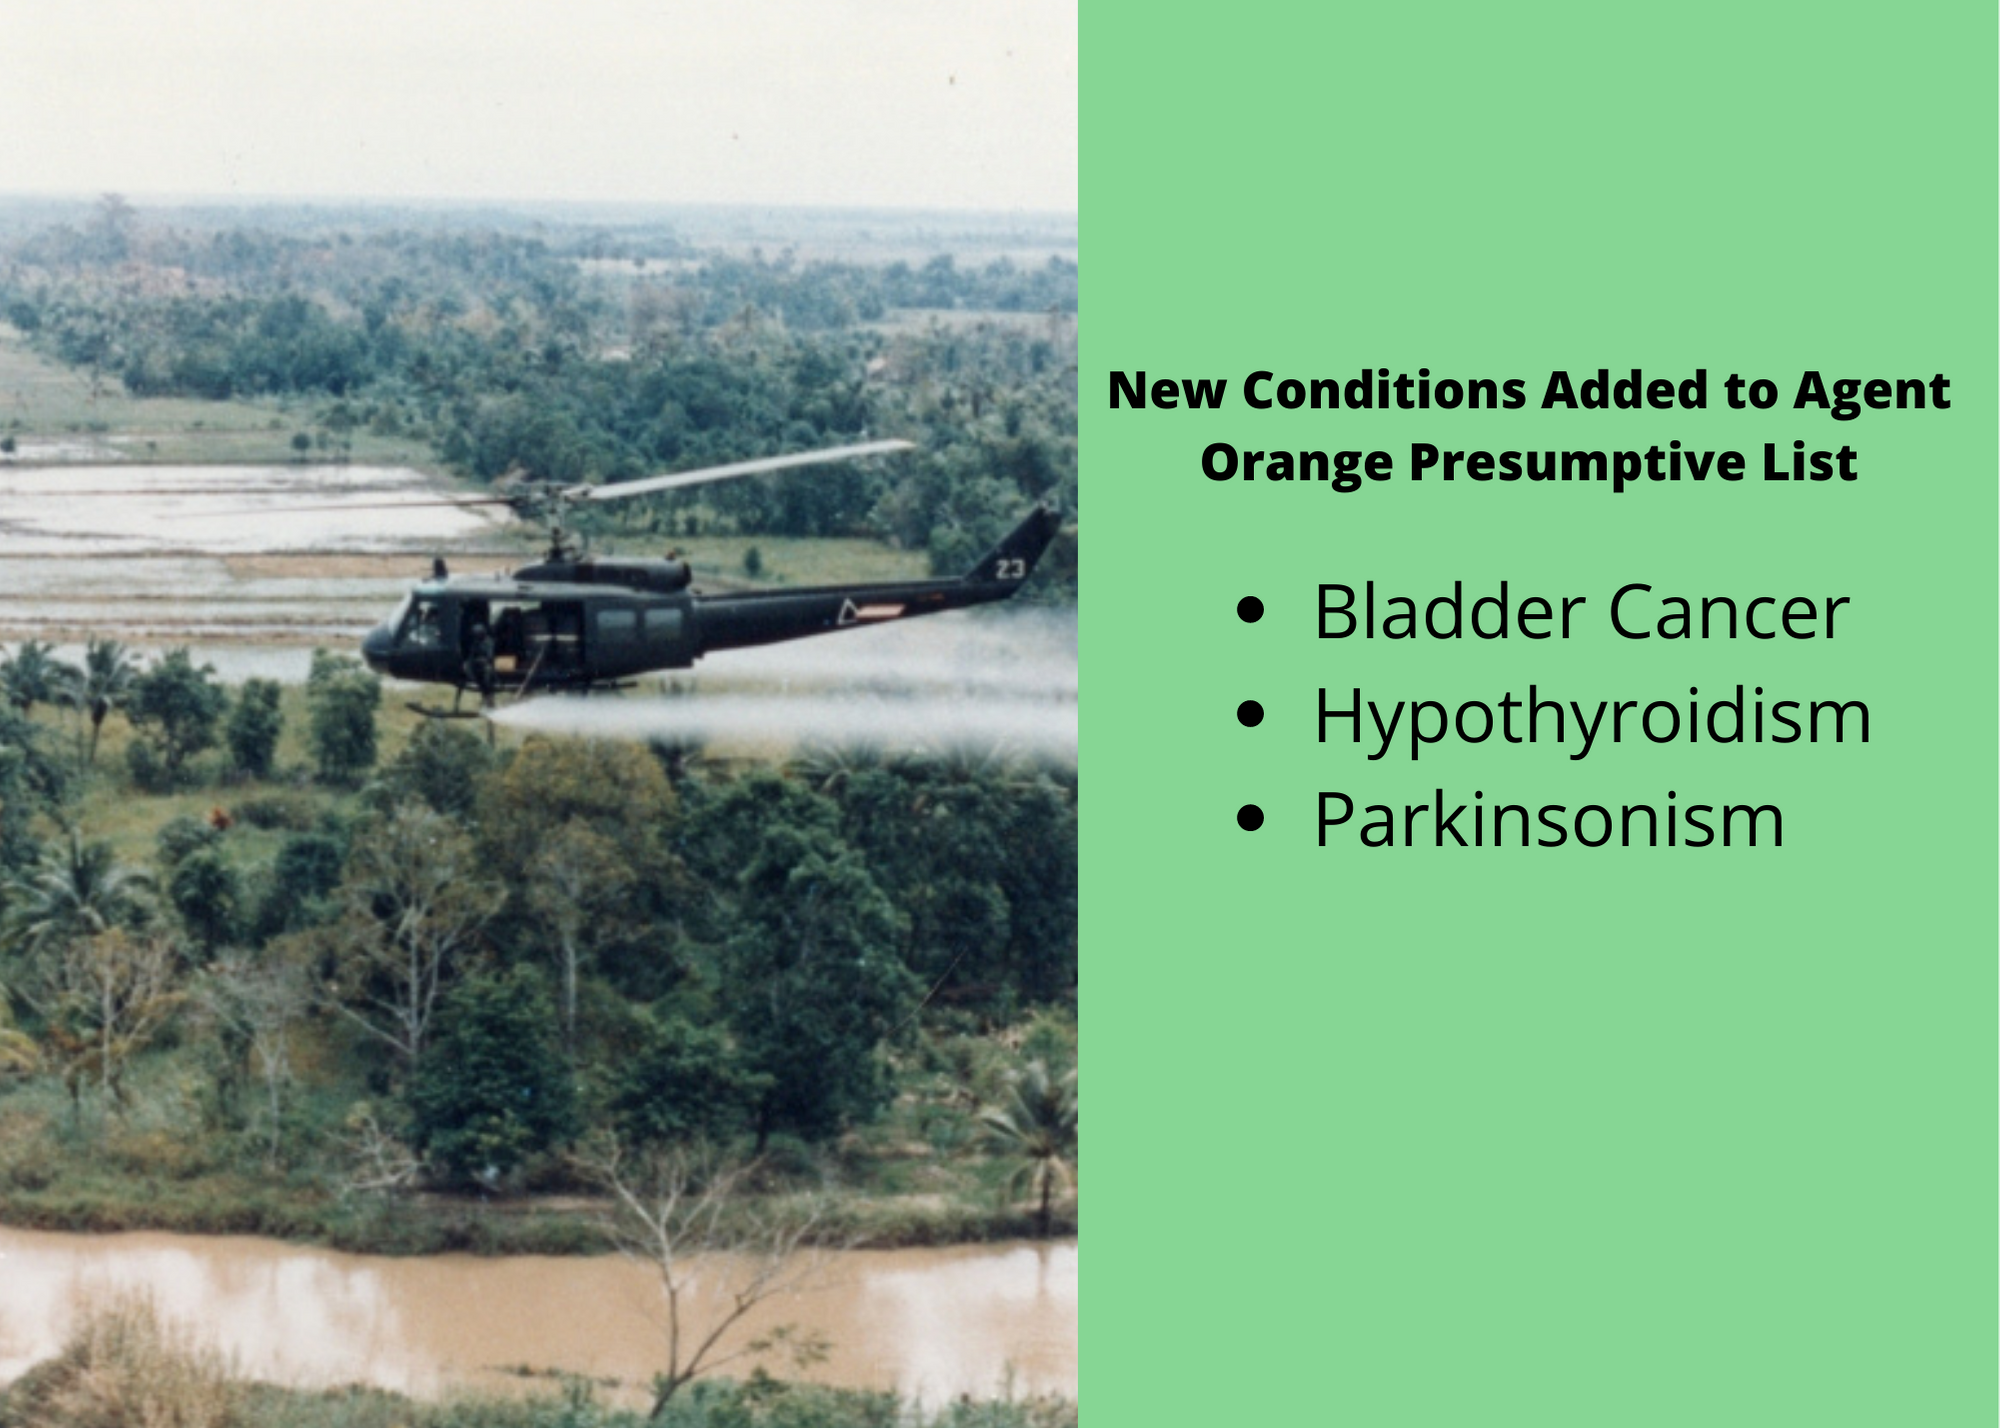 New Conditions Added to Agent Orange Presumptive List 2021